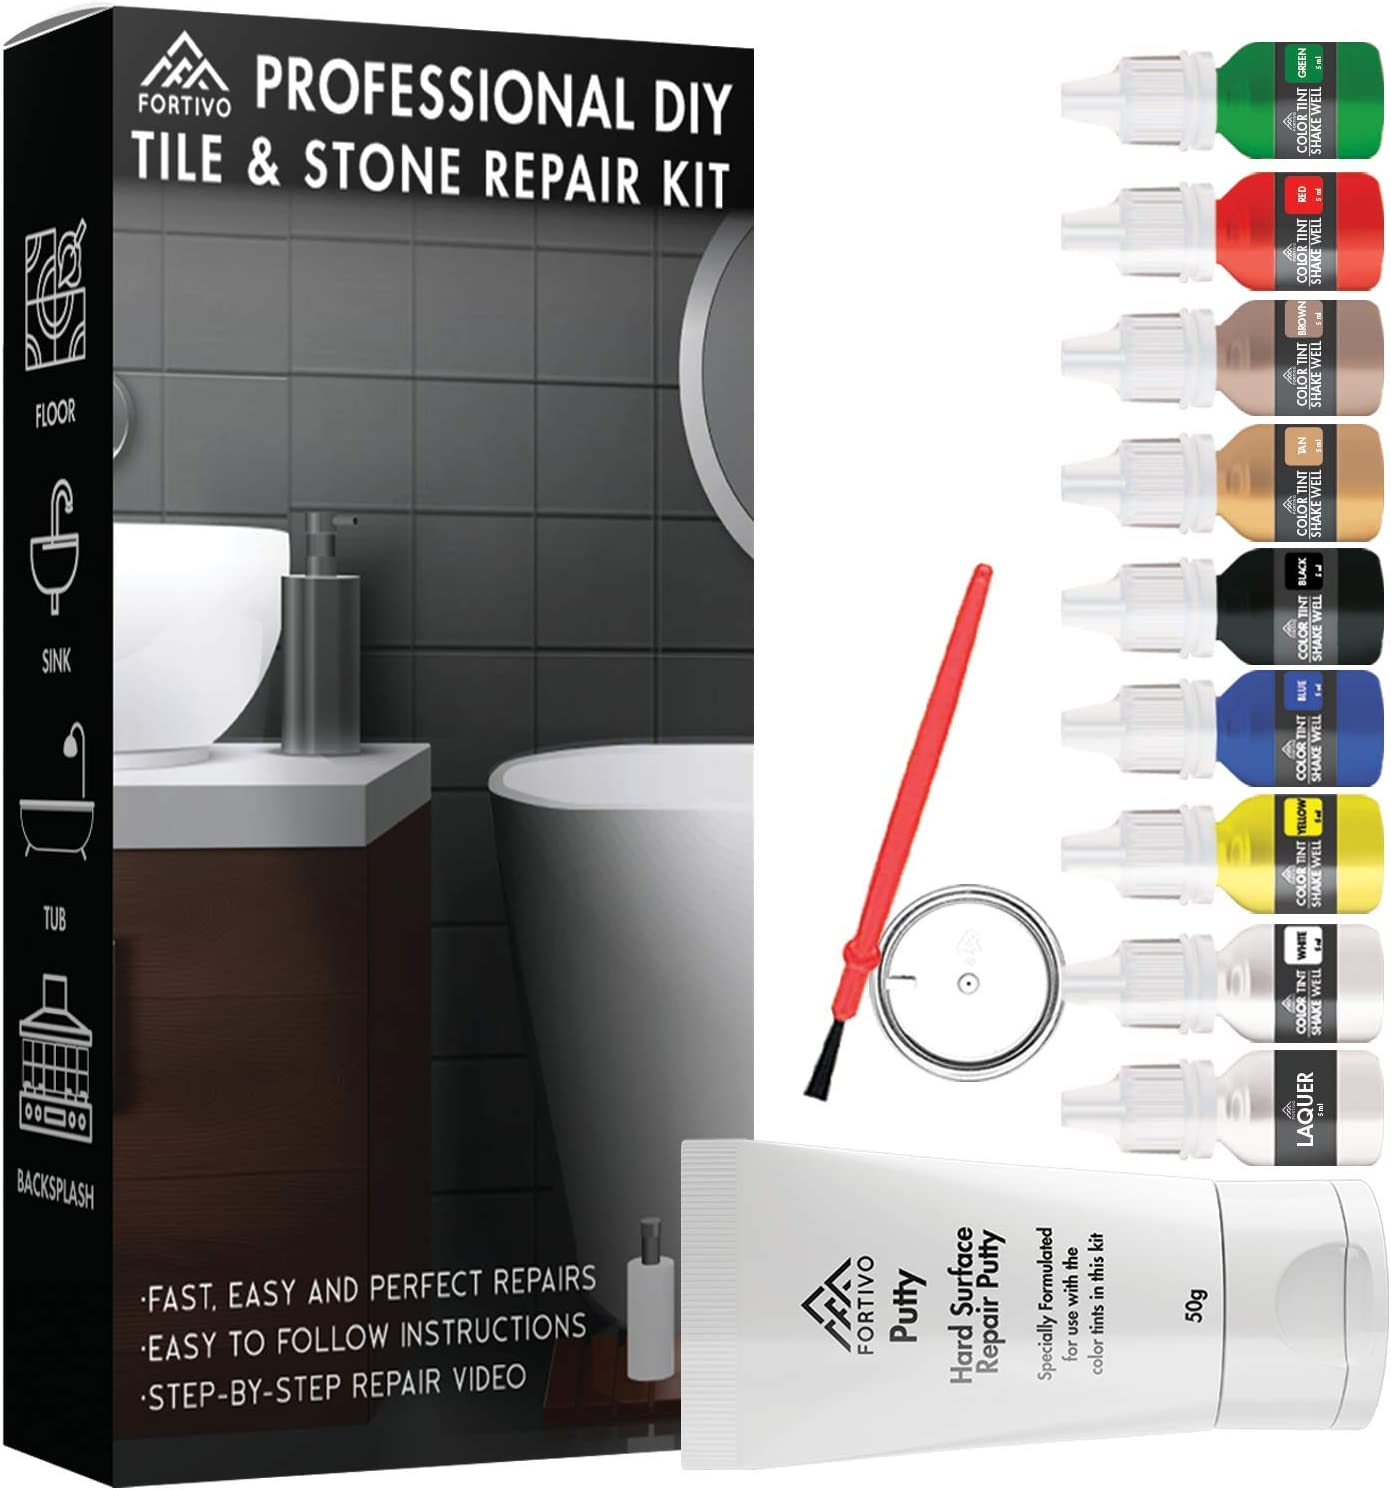 Tile Repair Kit Stone Repair Kit - Porcelain Repair Kit for Cracked Stone, Crack Chip Ceramic Floor - Tile Gap Filler & Repair Tile Paint - Granite Filler Repair Kit & Laminate Floor Scratch Remover